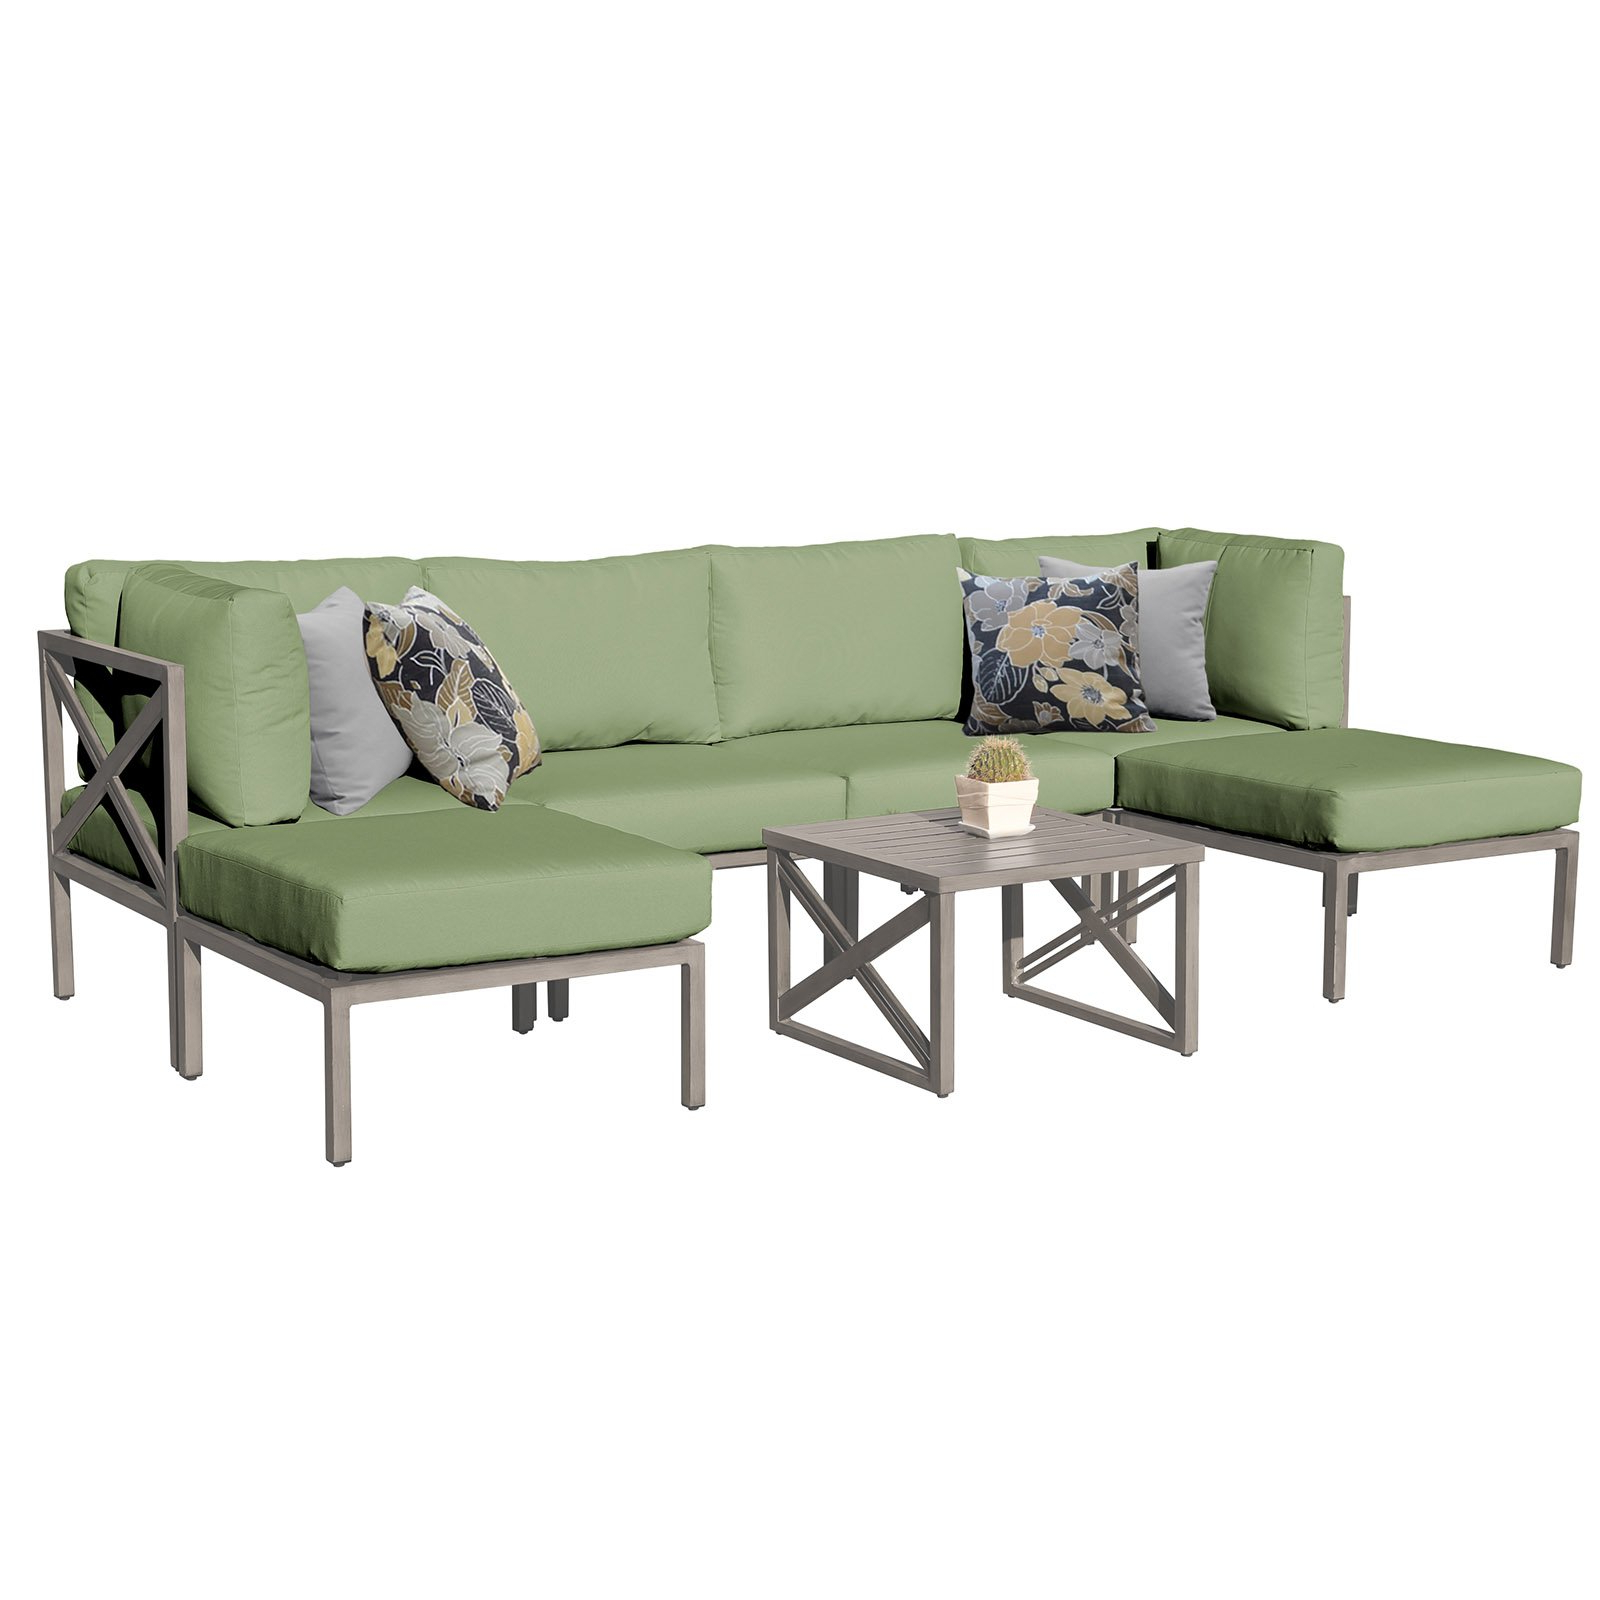 Outdoor Tk Classics Carlisle Aluminum 7 Piece Patio Sofa And Pertaining To Widely Used Carlisle Patio Sofas With Cushions (View 20 of 25)